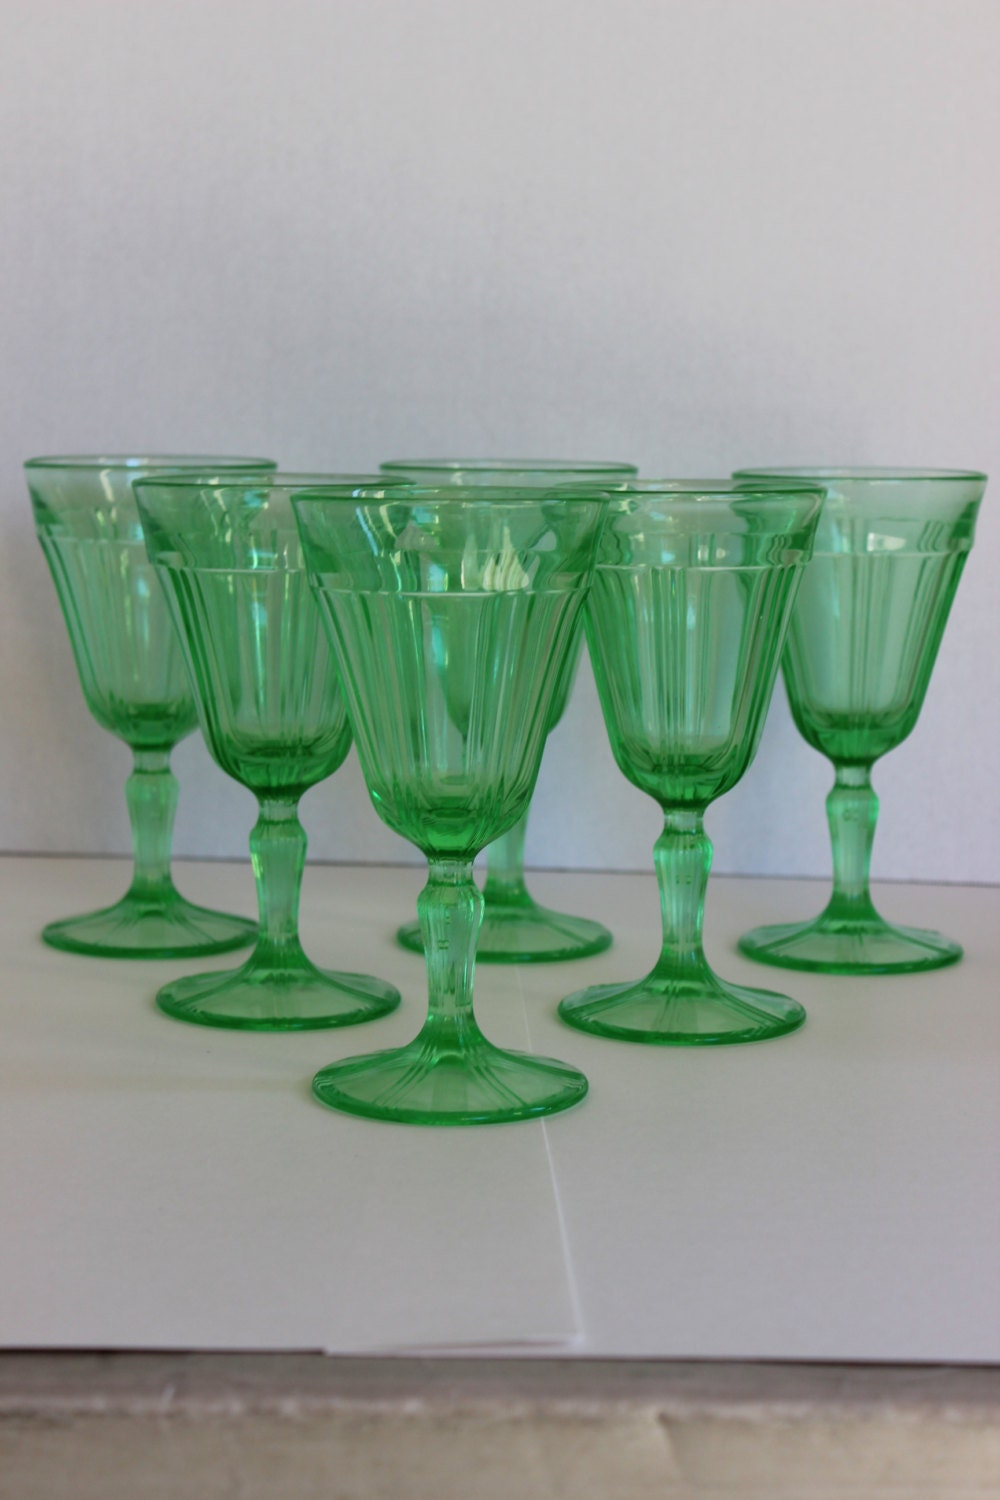 Rare green depression glass 6 6 1 2 tall goblets for Most valuable depression glass patterns